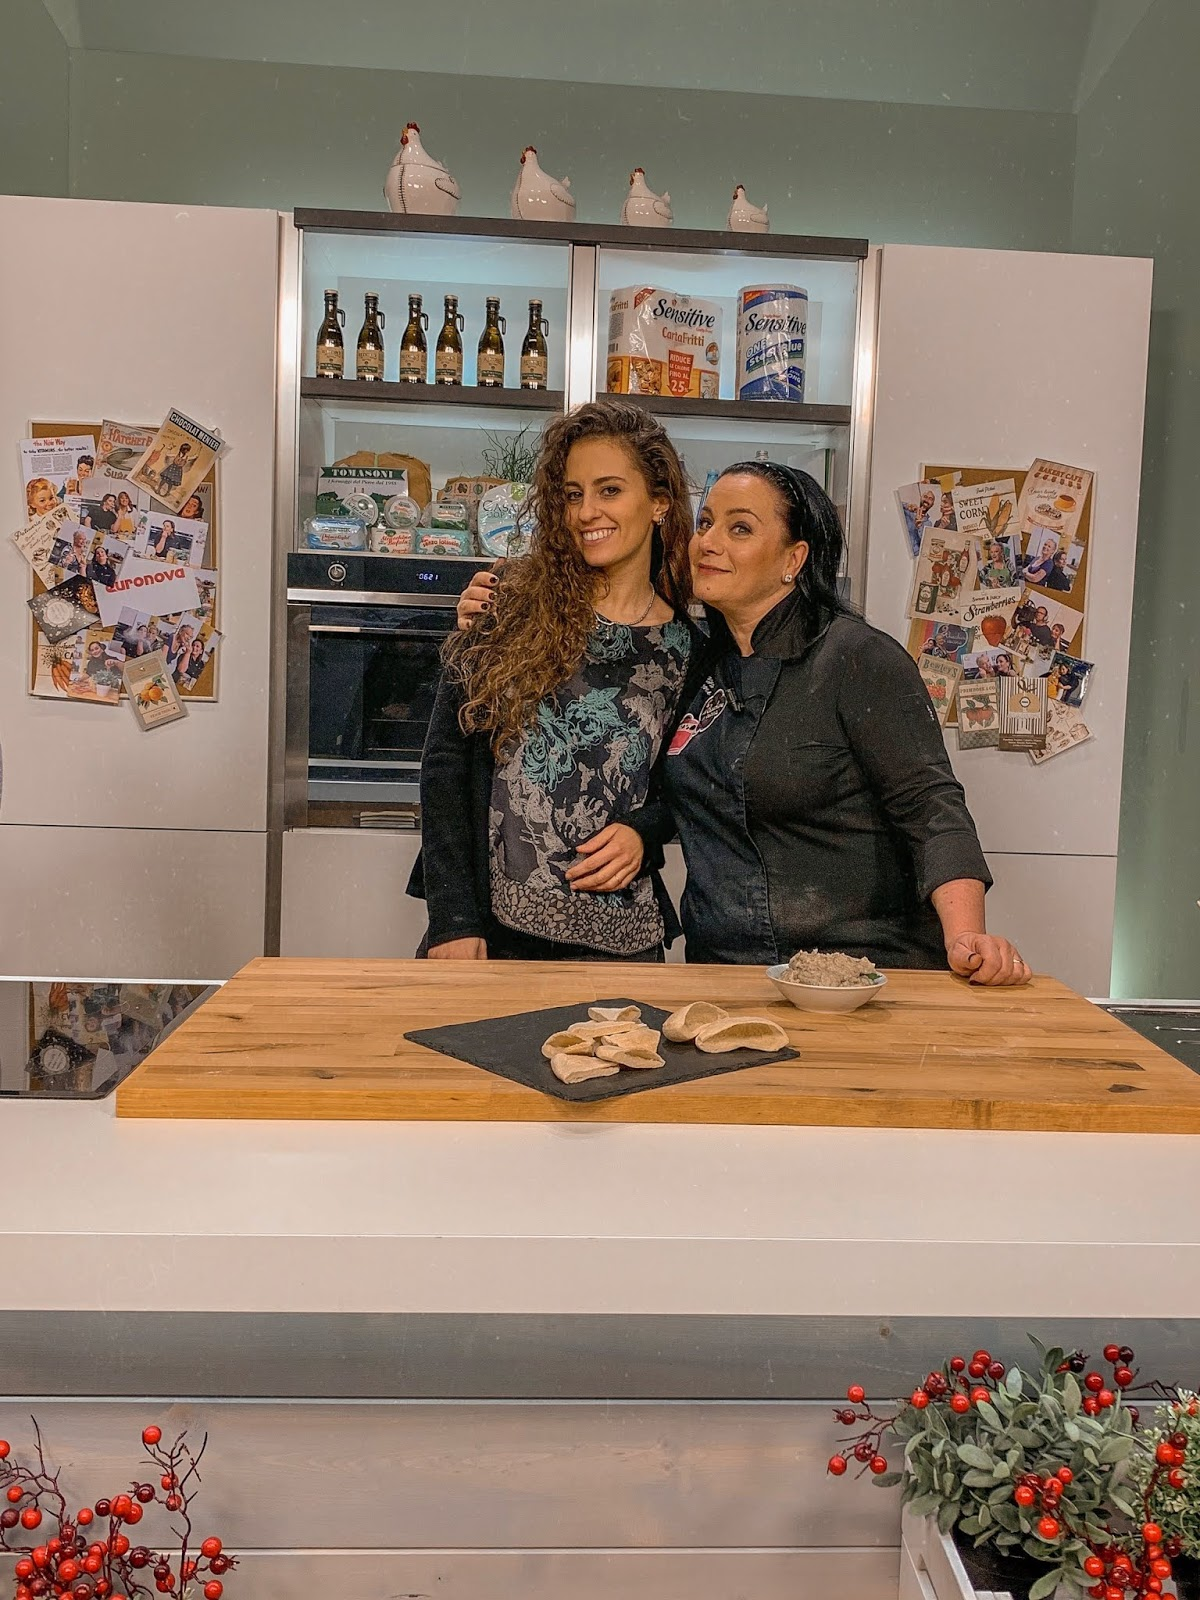 fashion need in televisione: ospite a 2 chiacchiere in cucina, 2 chiacchiere in cucina, telegold Padova, la 7 gold Padova, Valentina Rago, fashion need